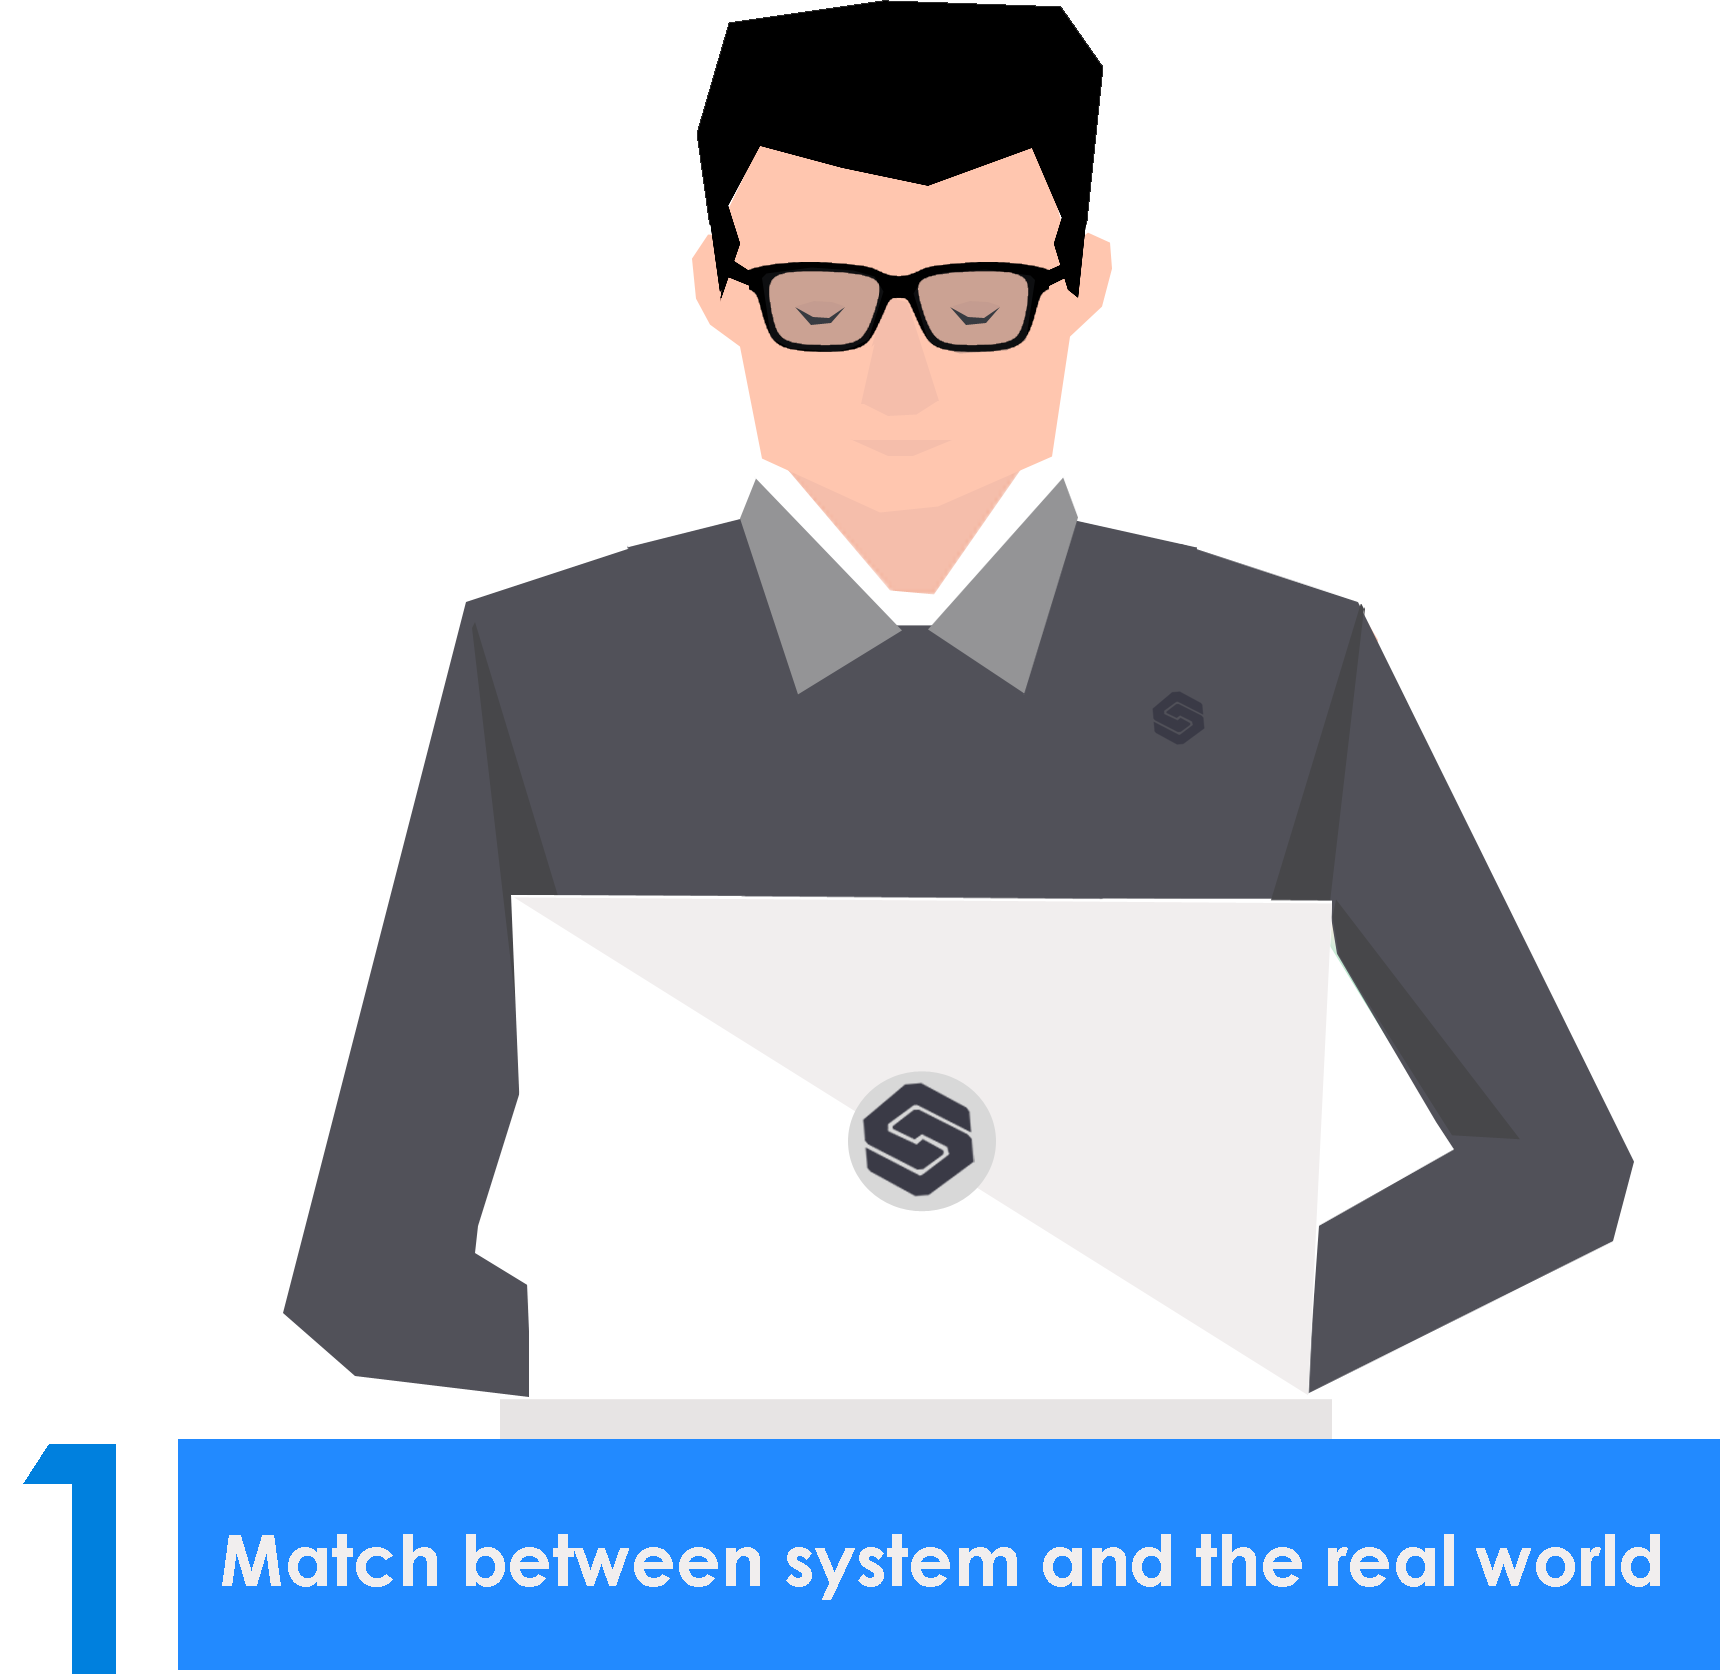 match between system and the real world example